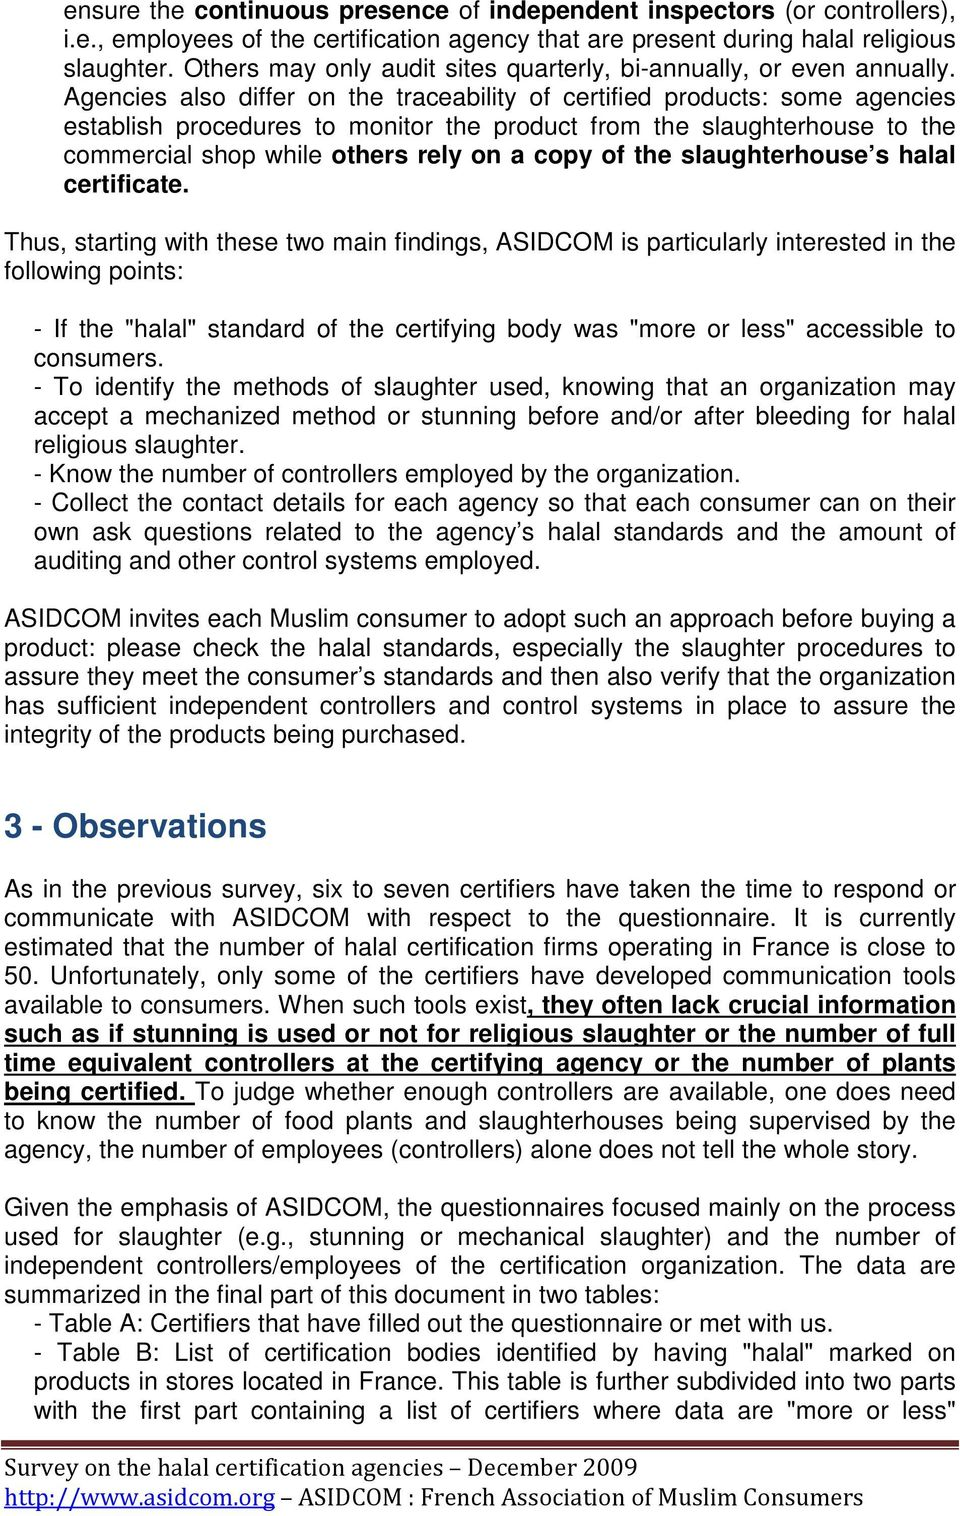 Agencies also differ on the traceability of certified products: some agencies establish procedures to monitor the product from the slaughterhouse to the commercial shop while others rely on a copy of